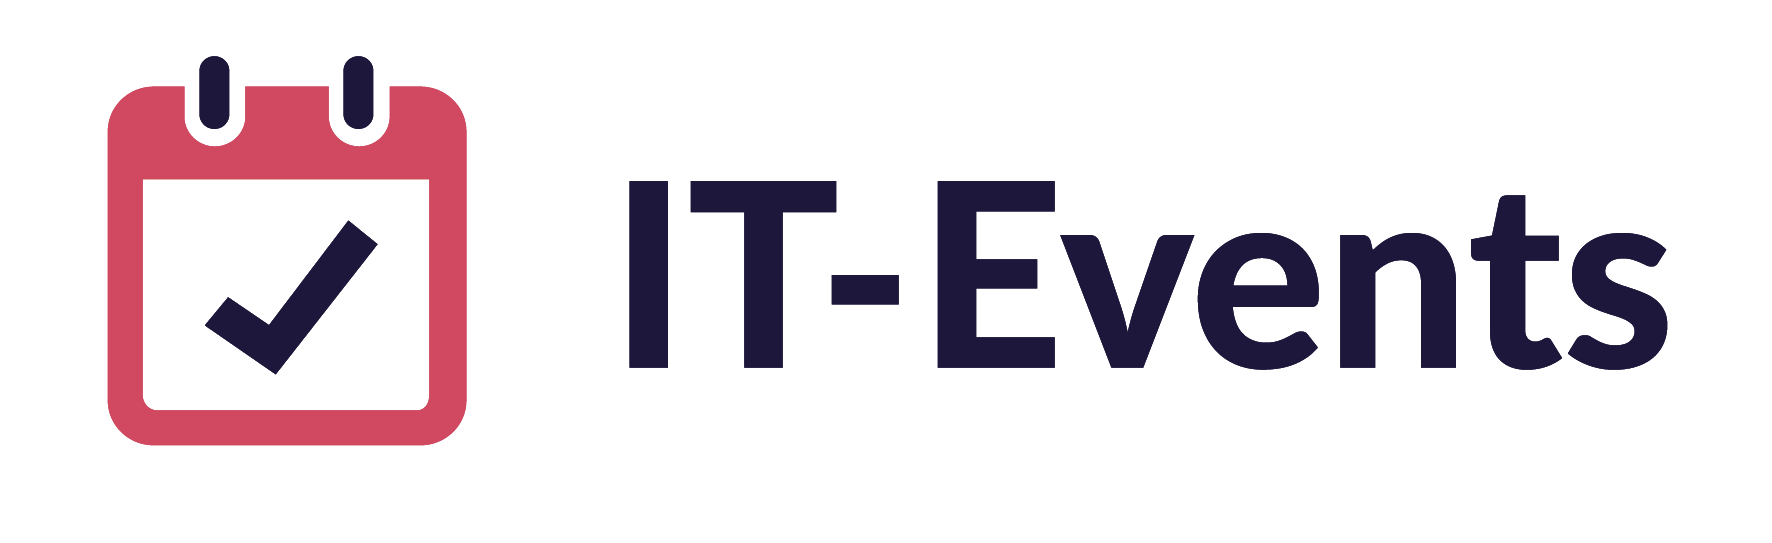 It-events logo